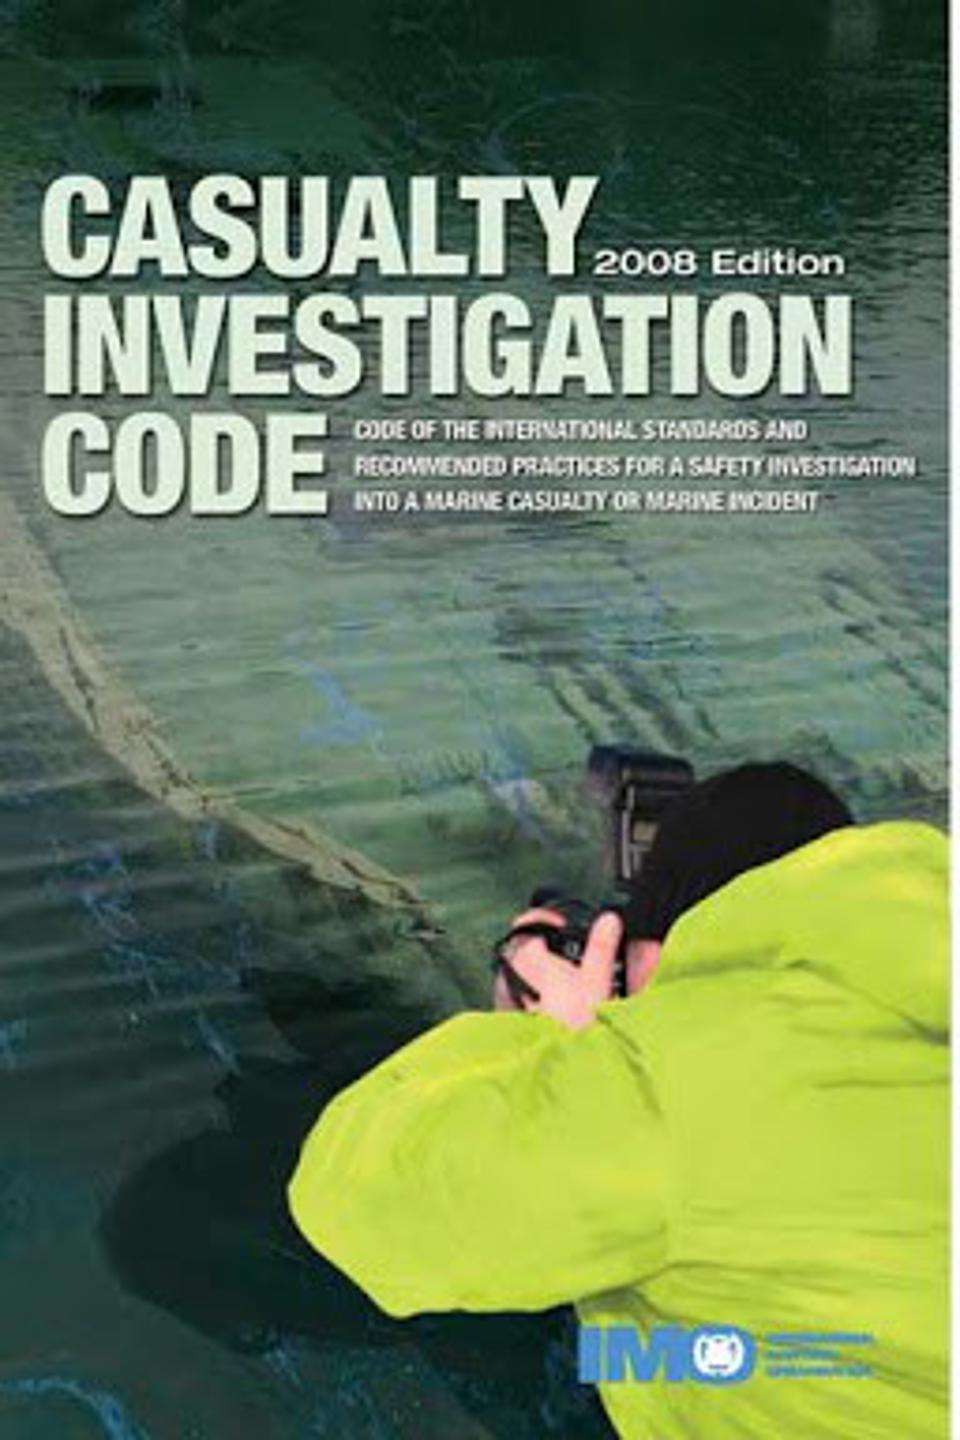 The IMO's Casualty Investigation Code